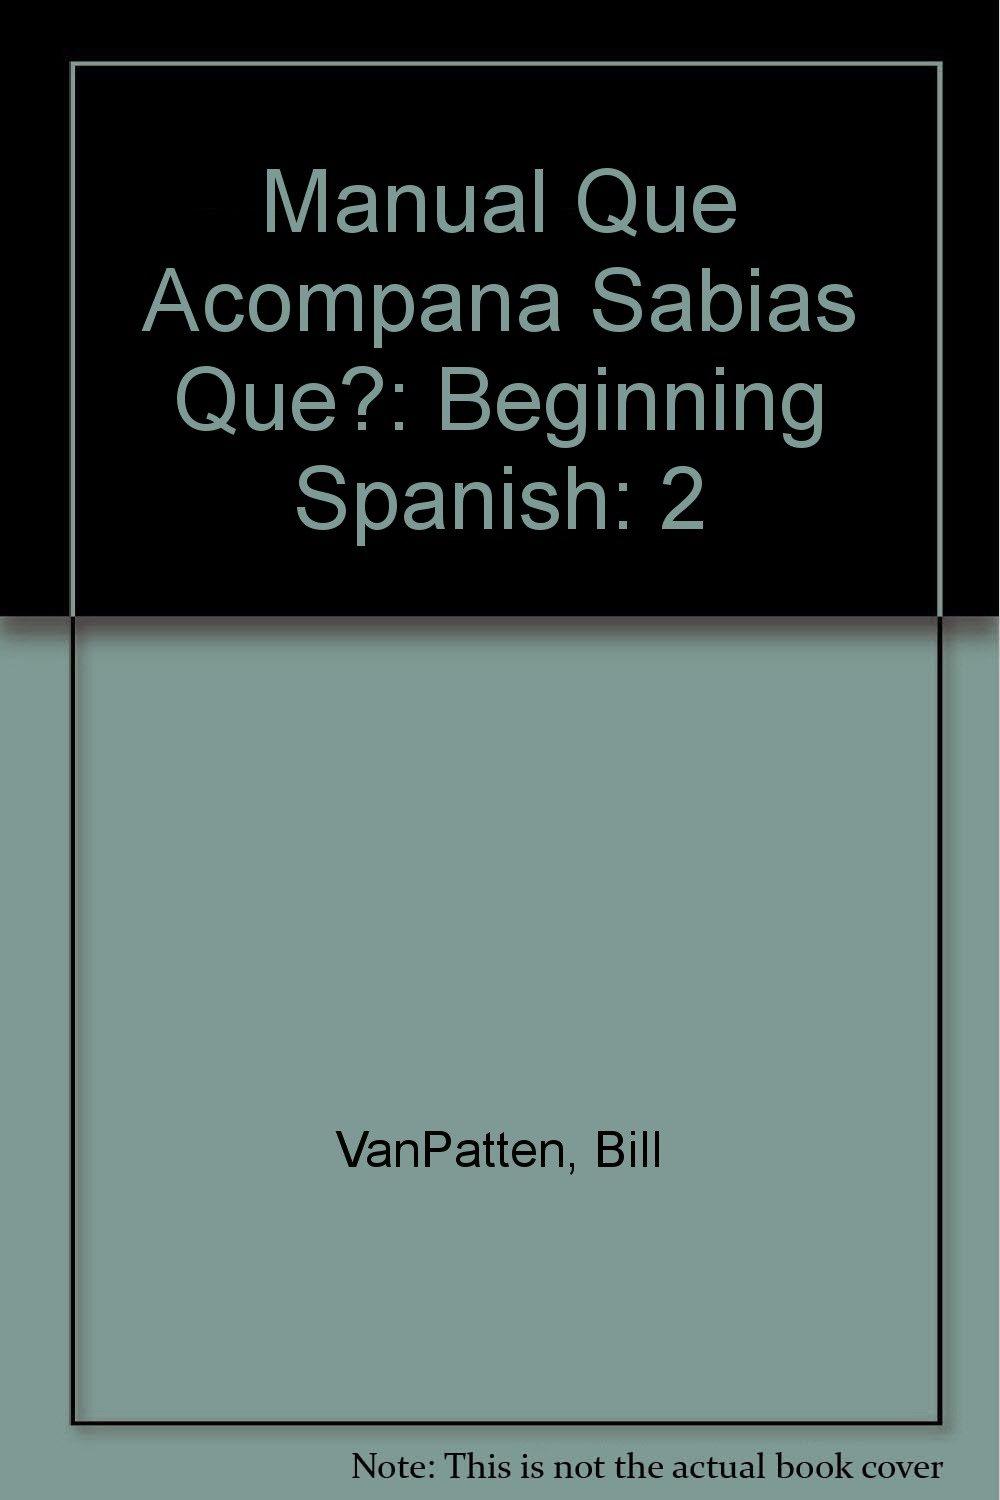 Buy Manual Que Acompana Sabias Que?: Beginning Spanish: 2 Book Online at  Low Prices in India | Manual Que Acompana Sabias Que?: Beginning Spanish: 2  Reviews ...